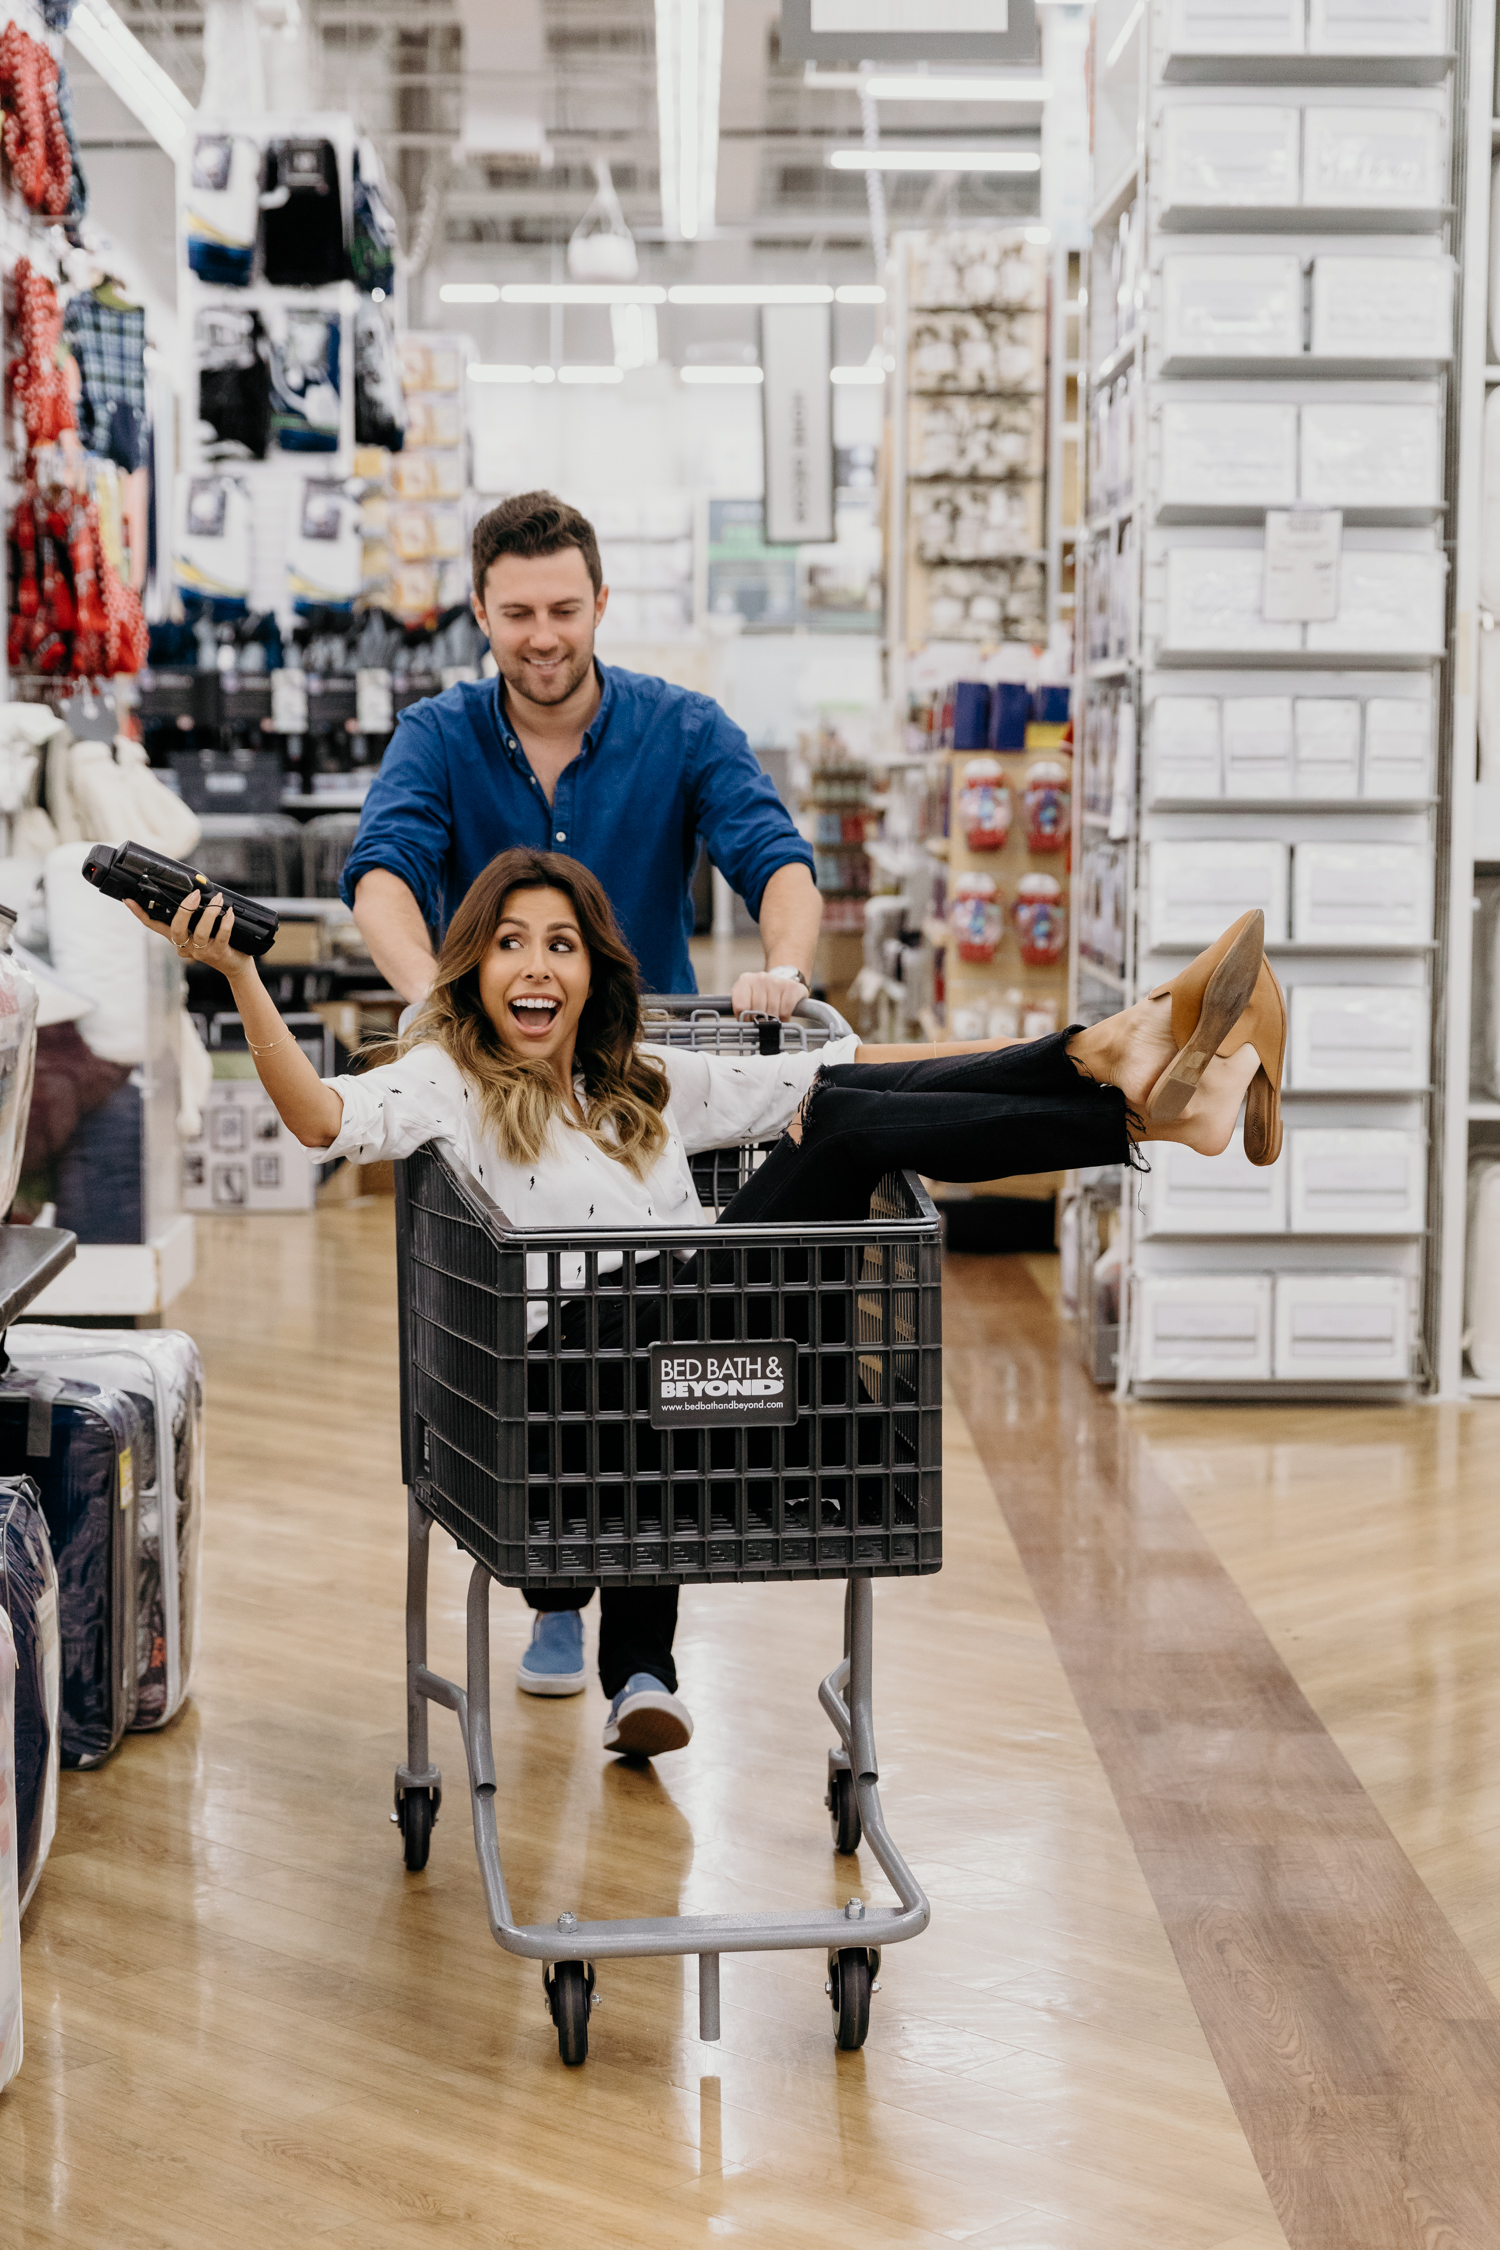 The best place to register for your wedding: Bed Bath and Beyond